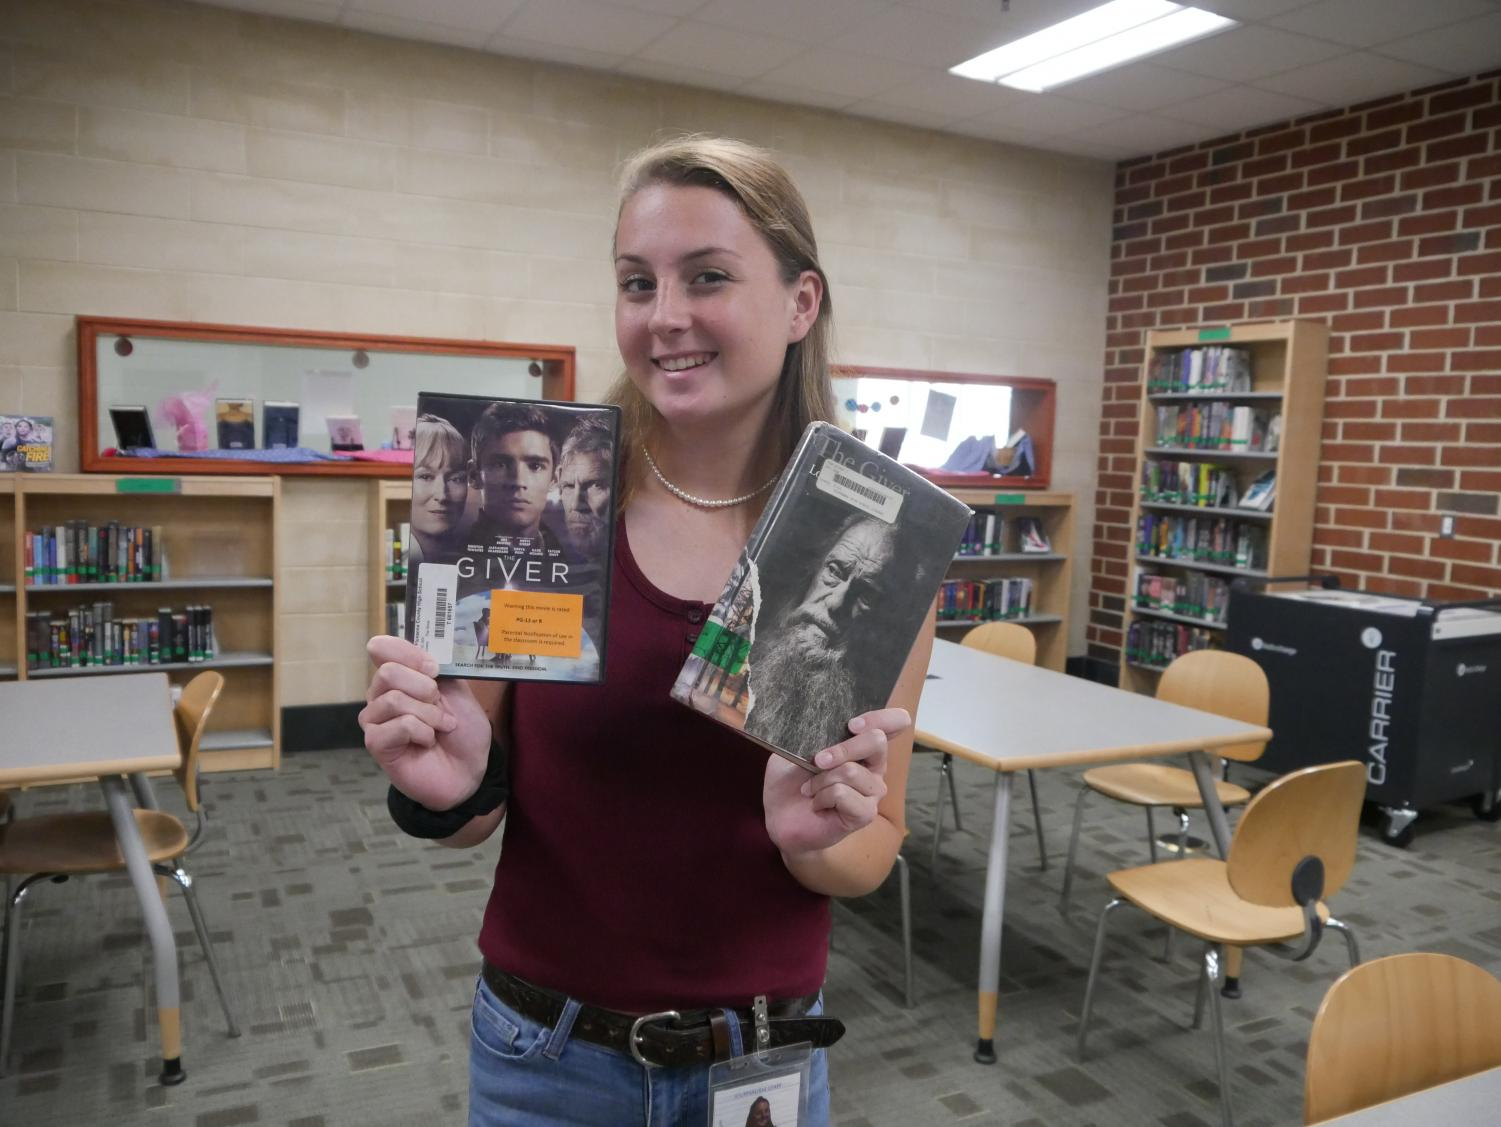 Alison Sawyer posing with 'The Giver', both movie and book.